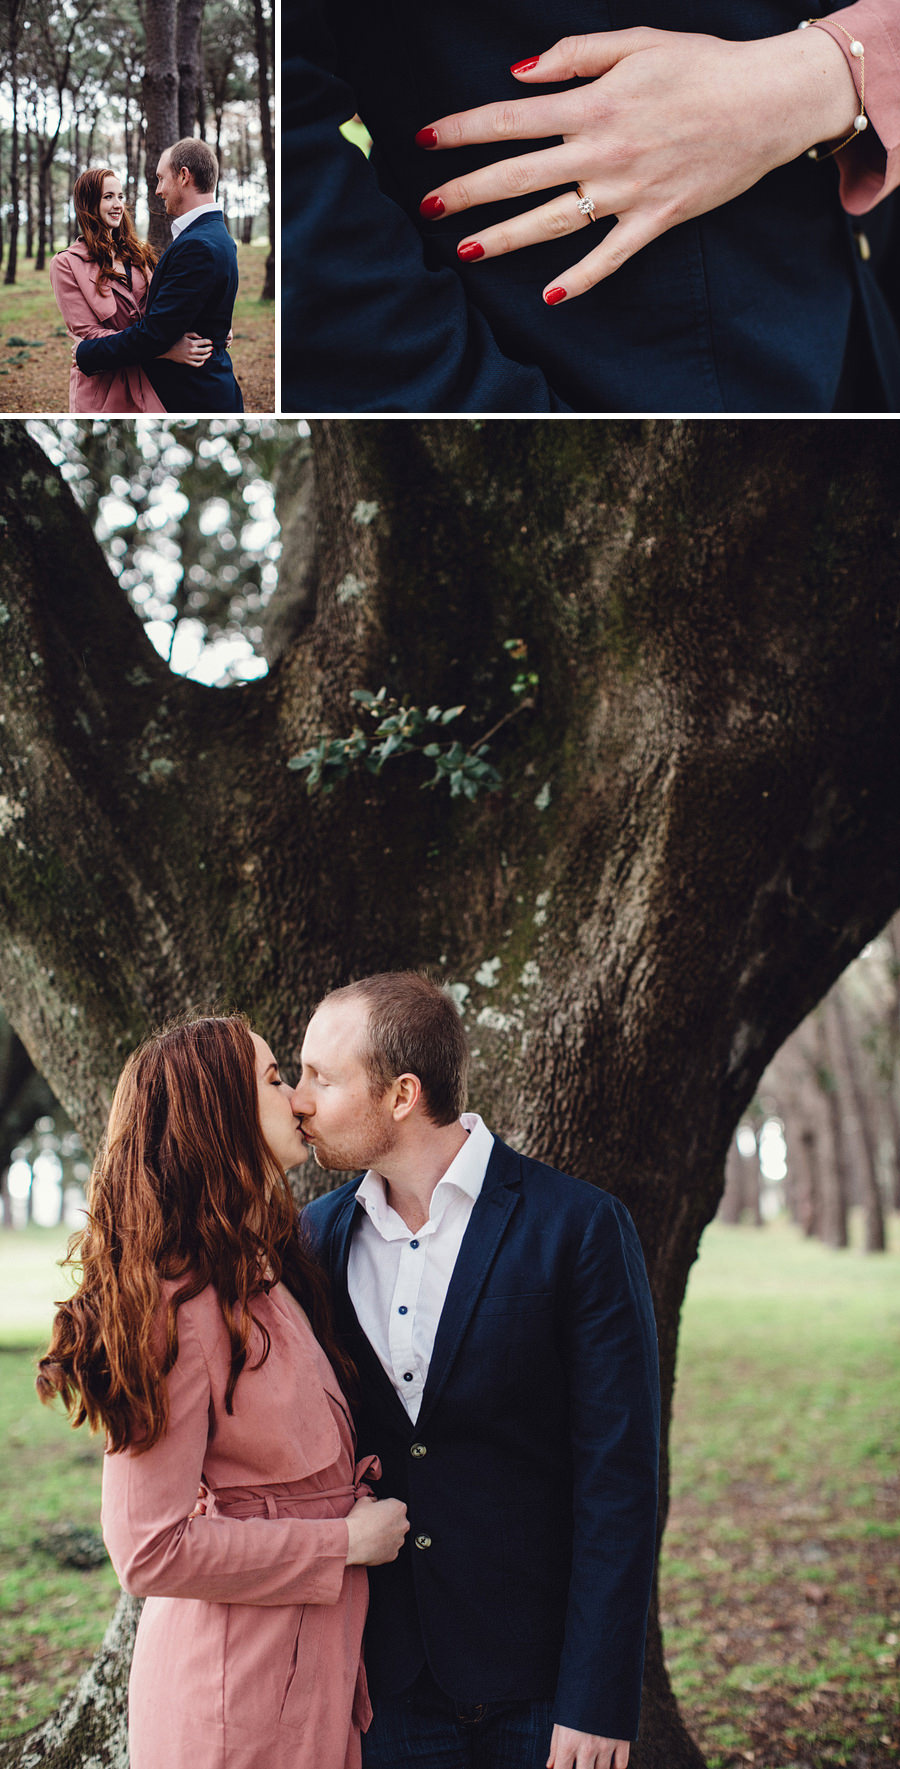 Centennial Park Engagement Photographers: Natalie & Luke